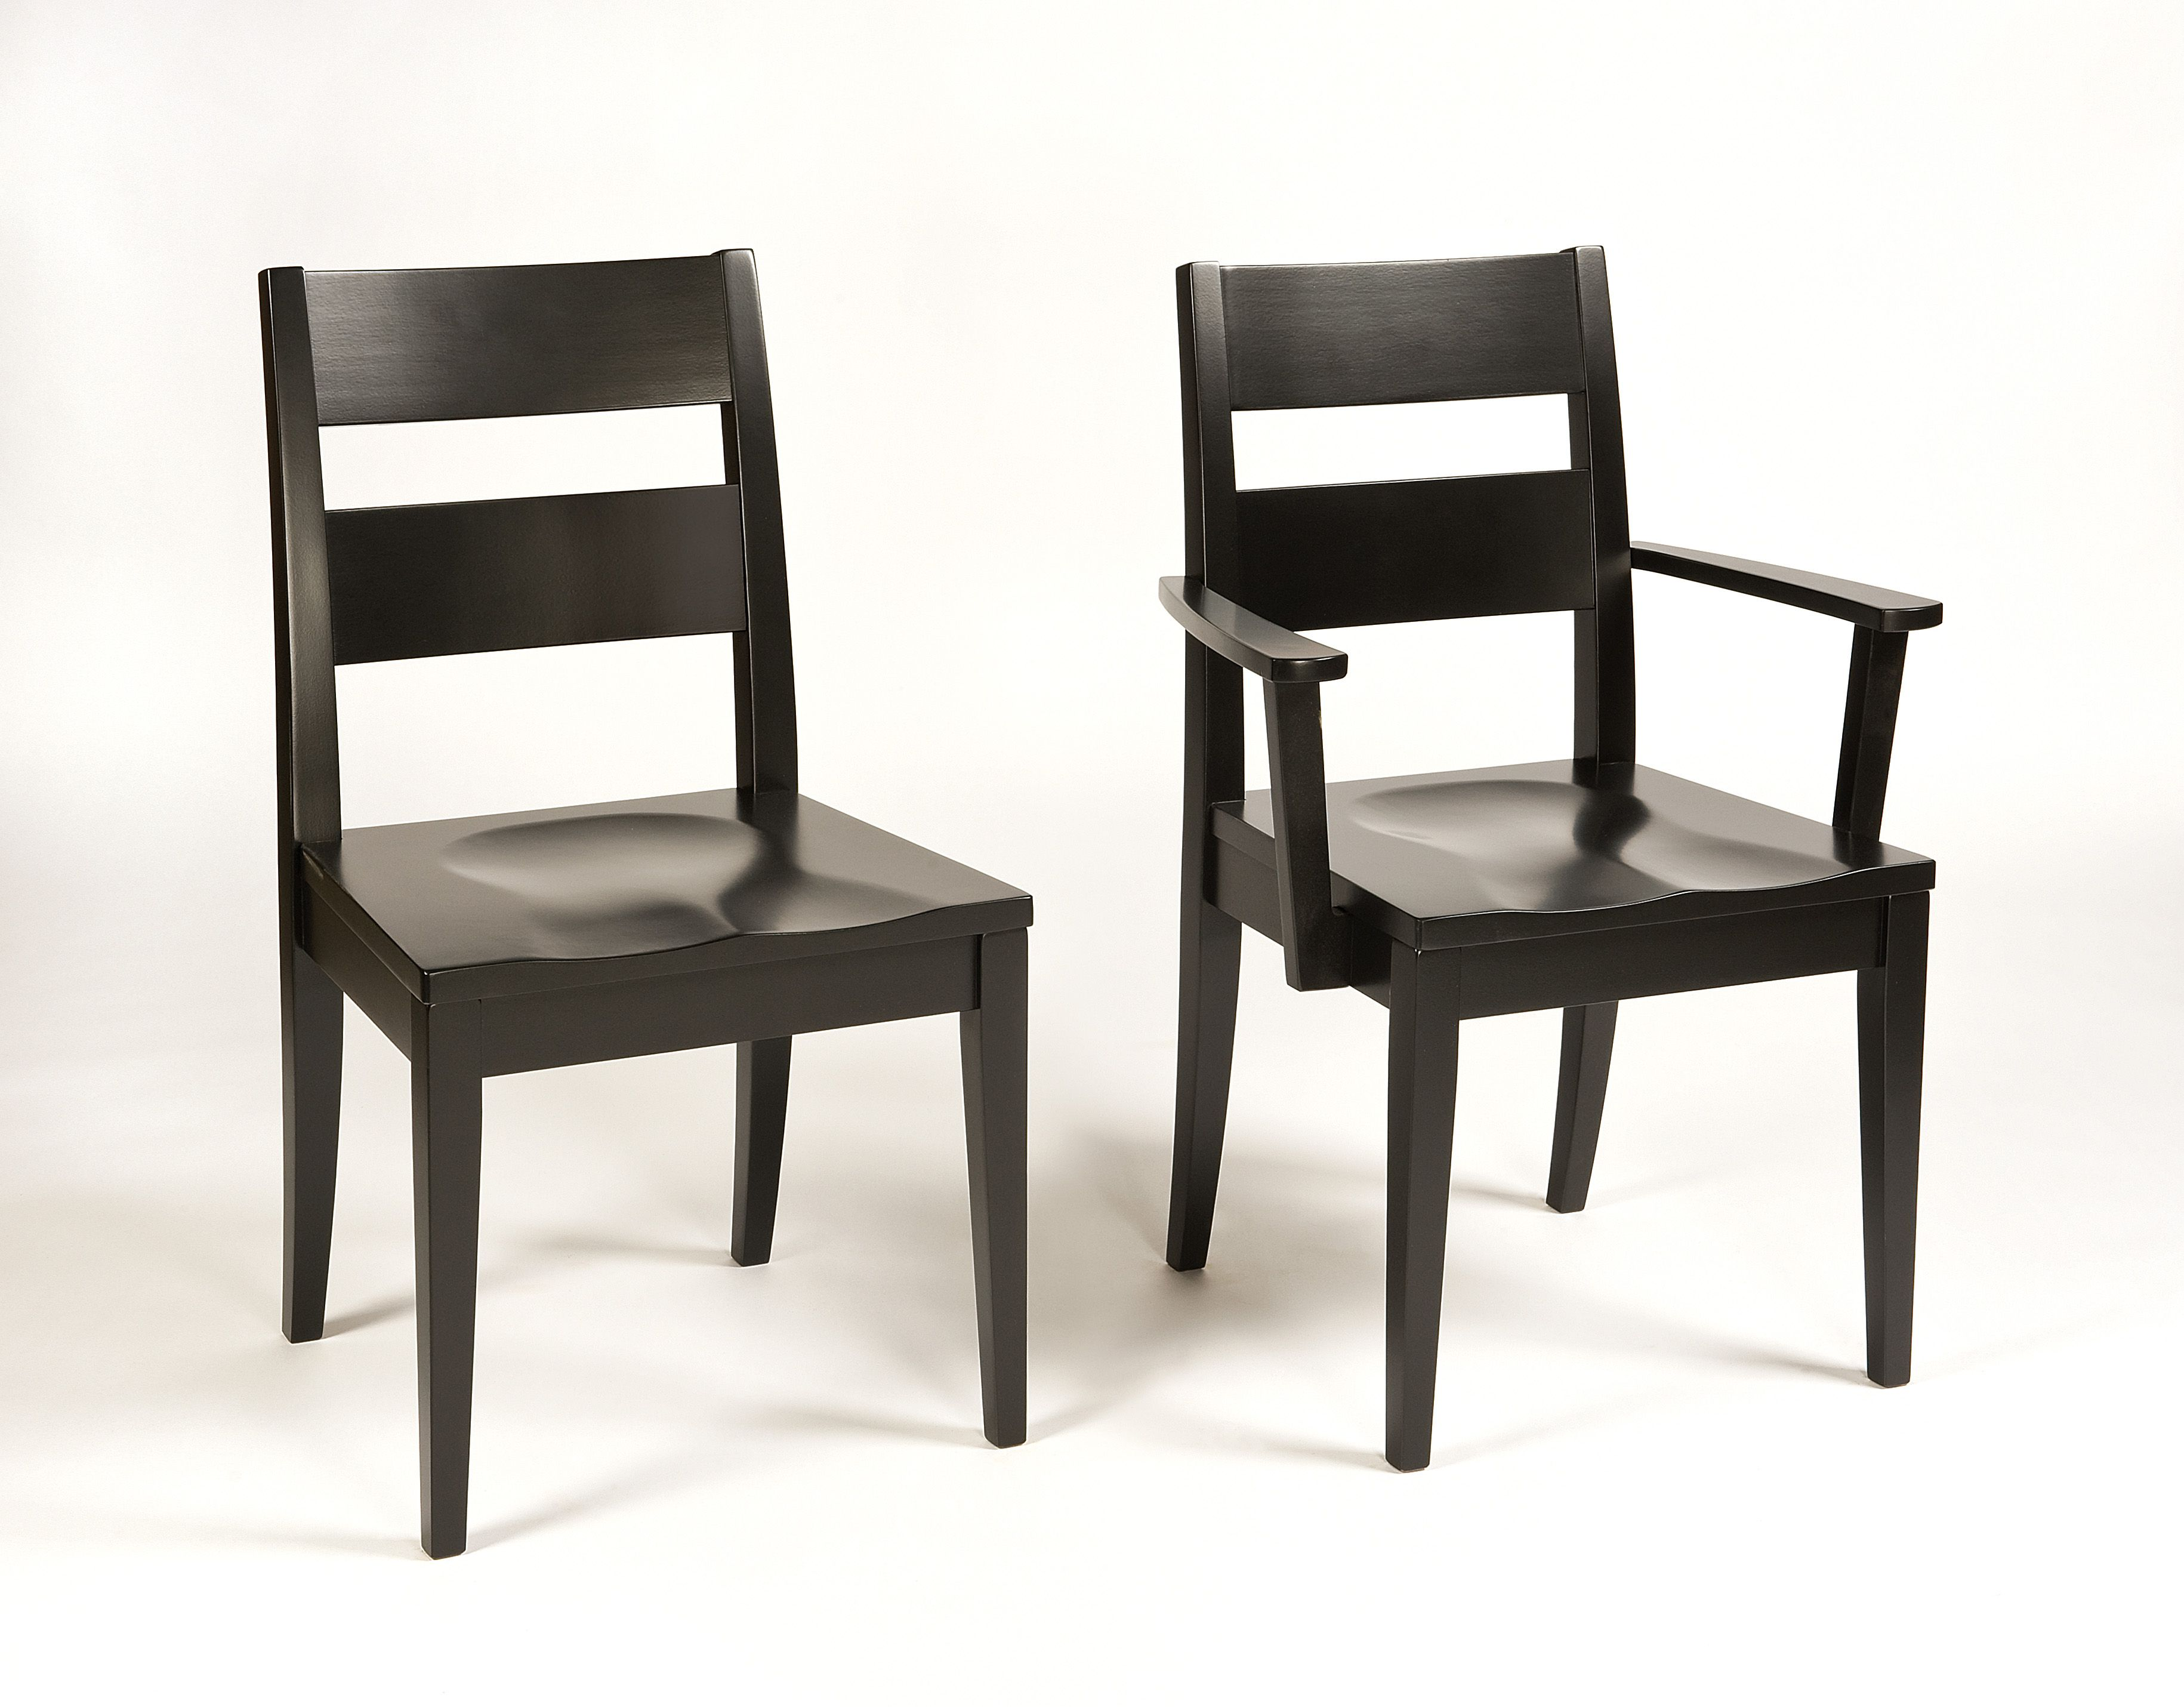 Tremendous Carson Dining Chair Dining Chairs Dining Chairs Chair Download Free Architecture Designs Grimeyleaguecom